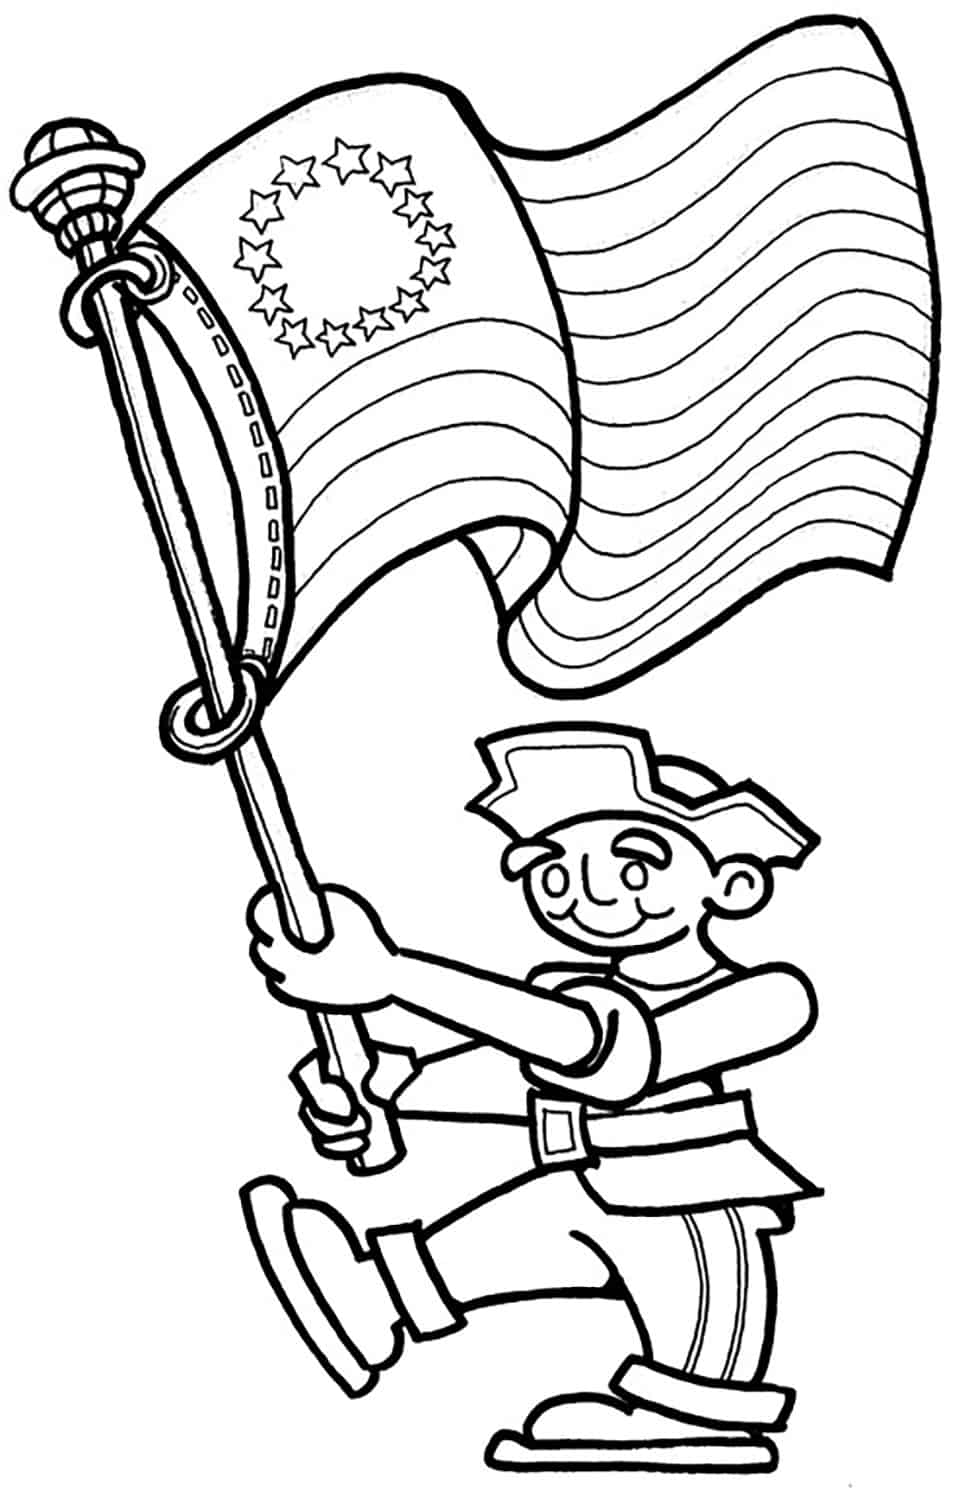 july coloring pictures 4th of july coloring pages 321 coloring pages july coloring pictures